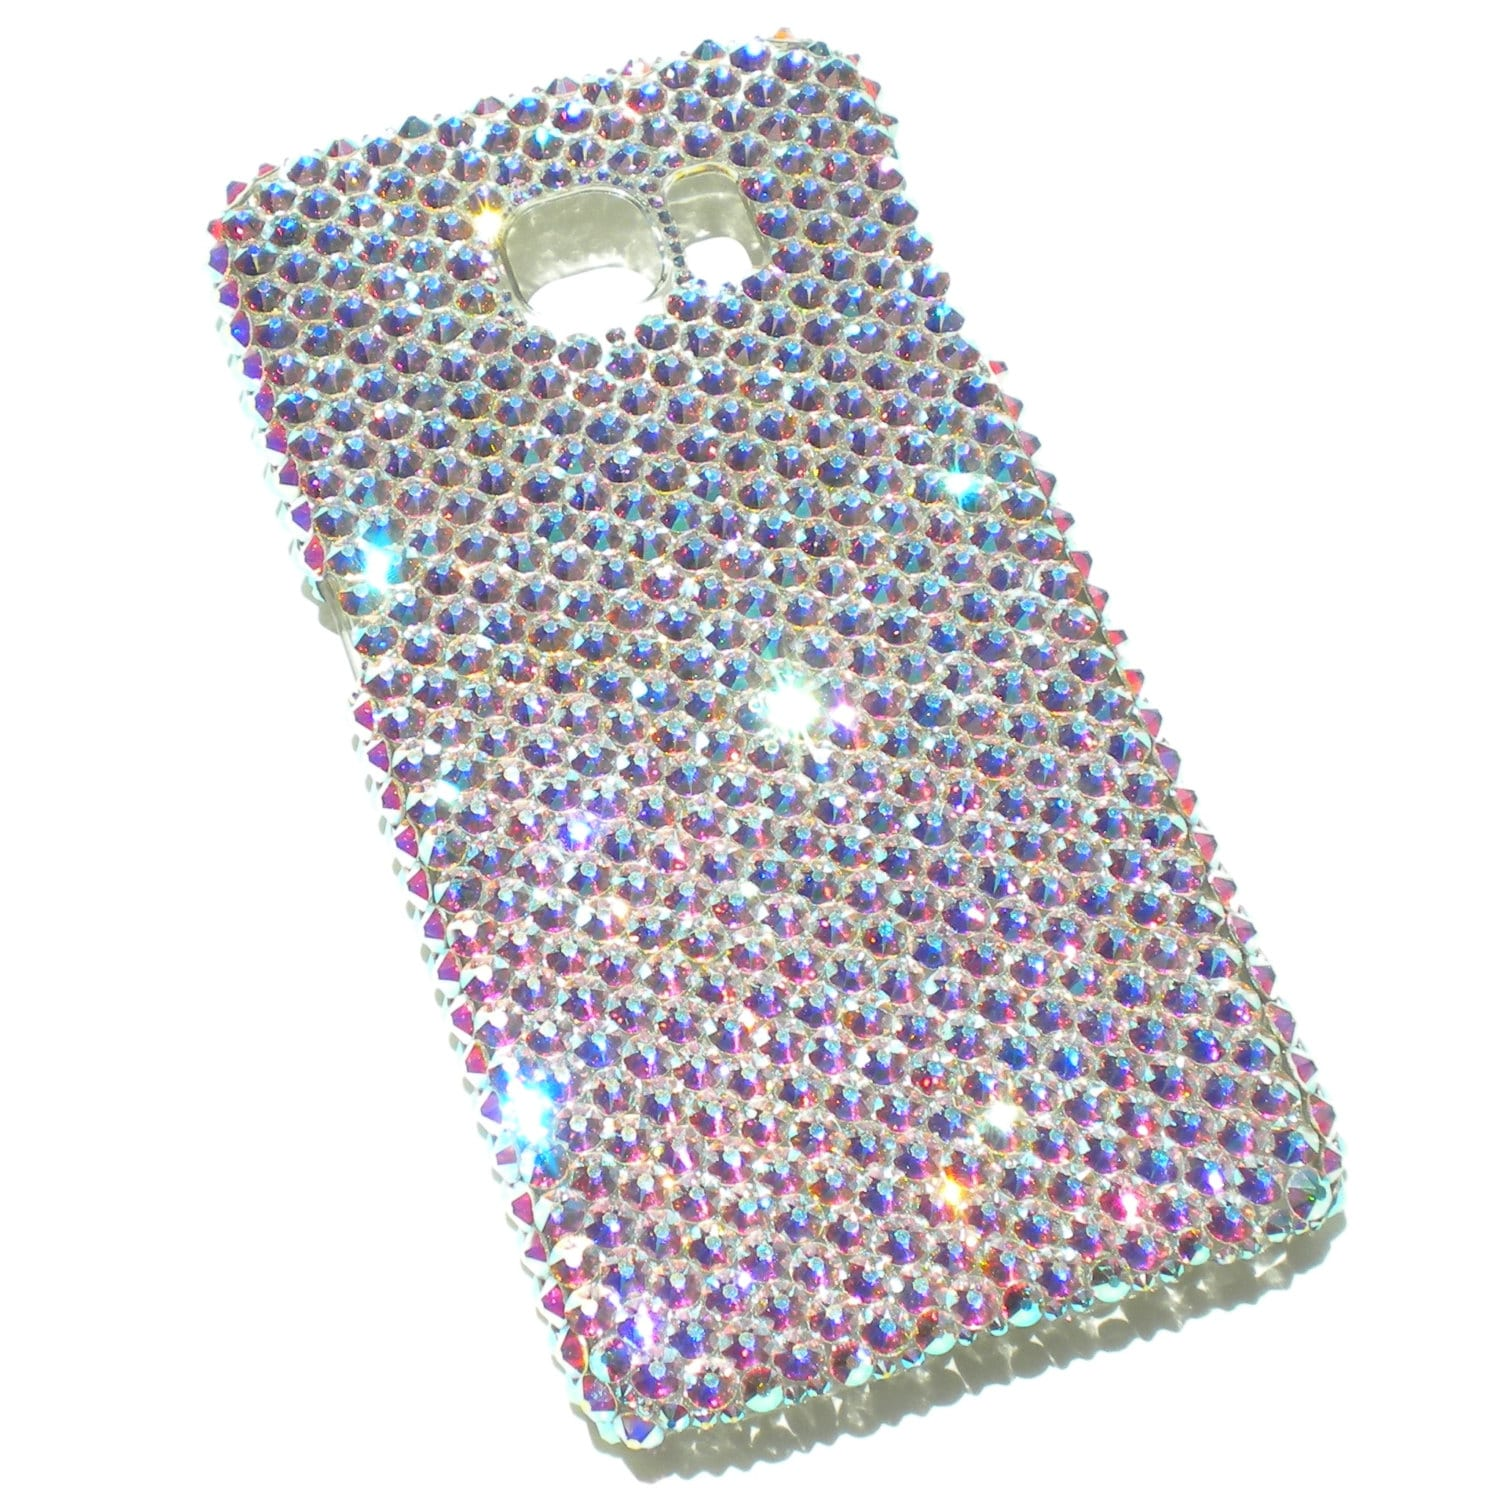 16d90f90e For New Samsung Galaxy S6 Edge Iridescent Crystal AB   Etsy